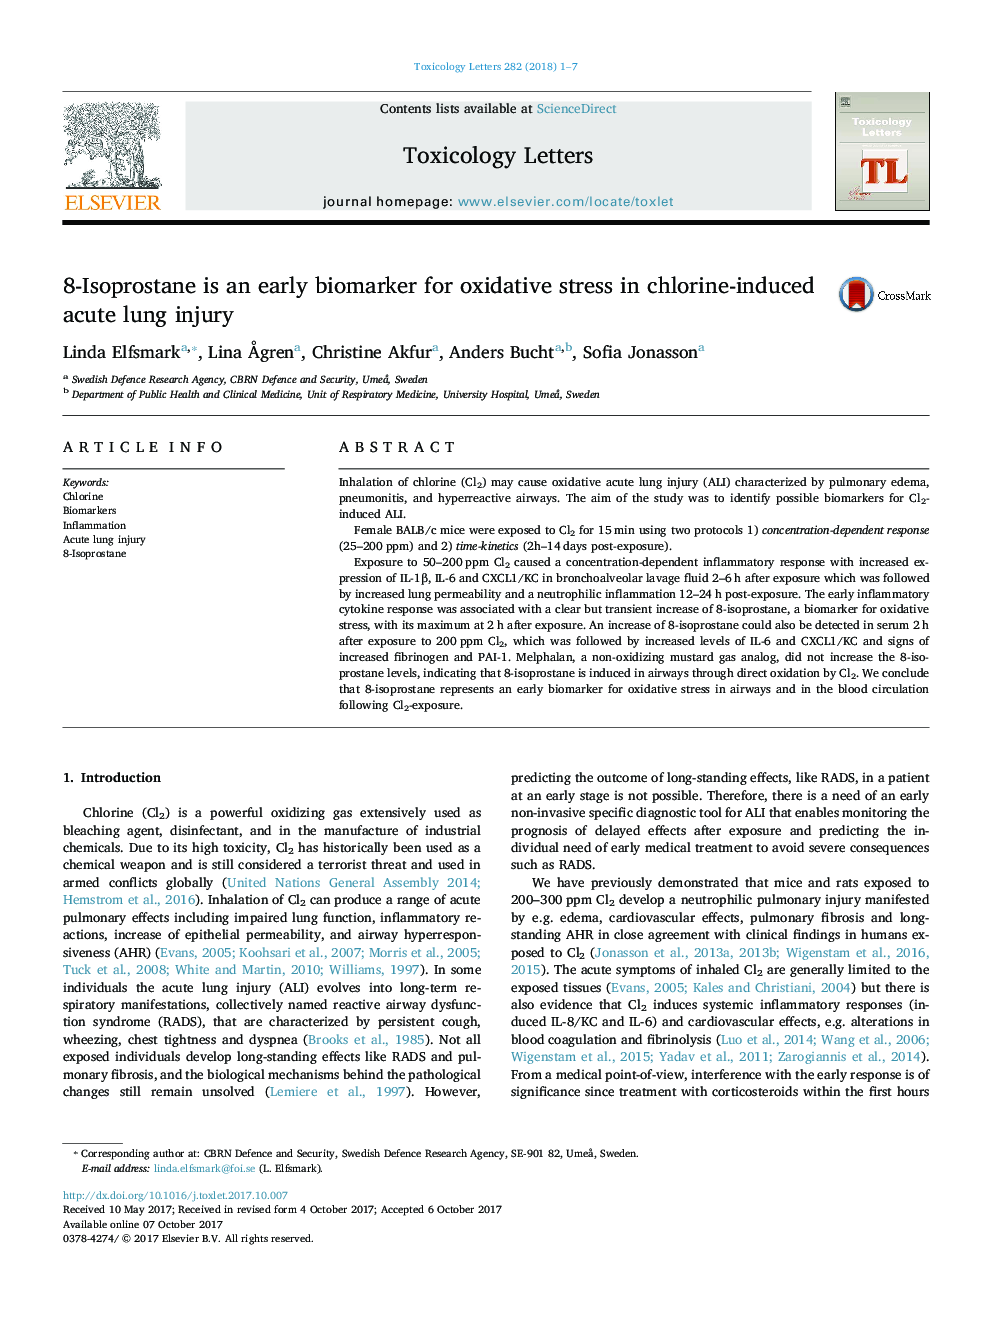 8-Isoprostane is an early biomarker for oxidative stress in chlorine-induced acute lung injury